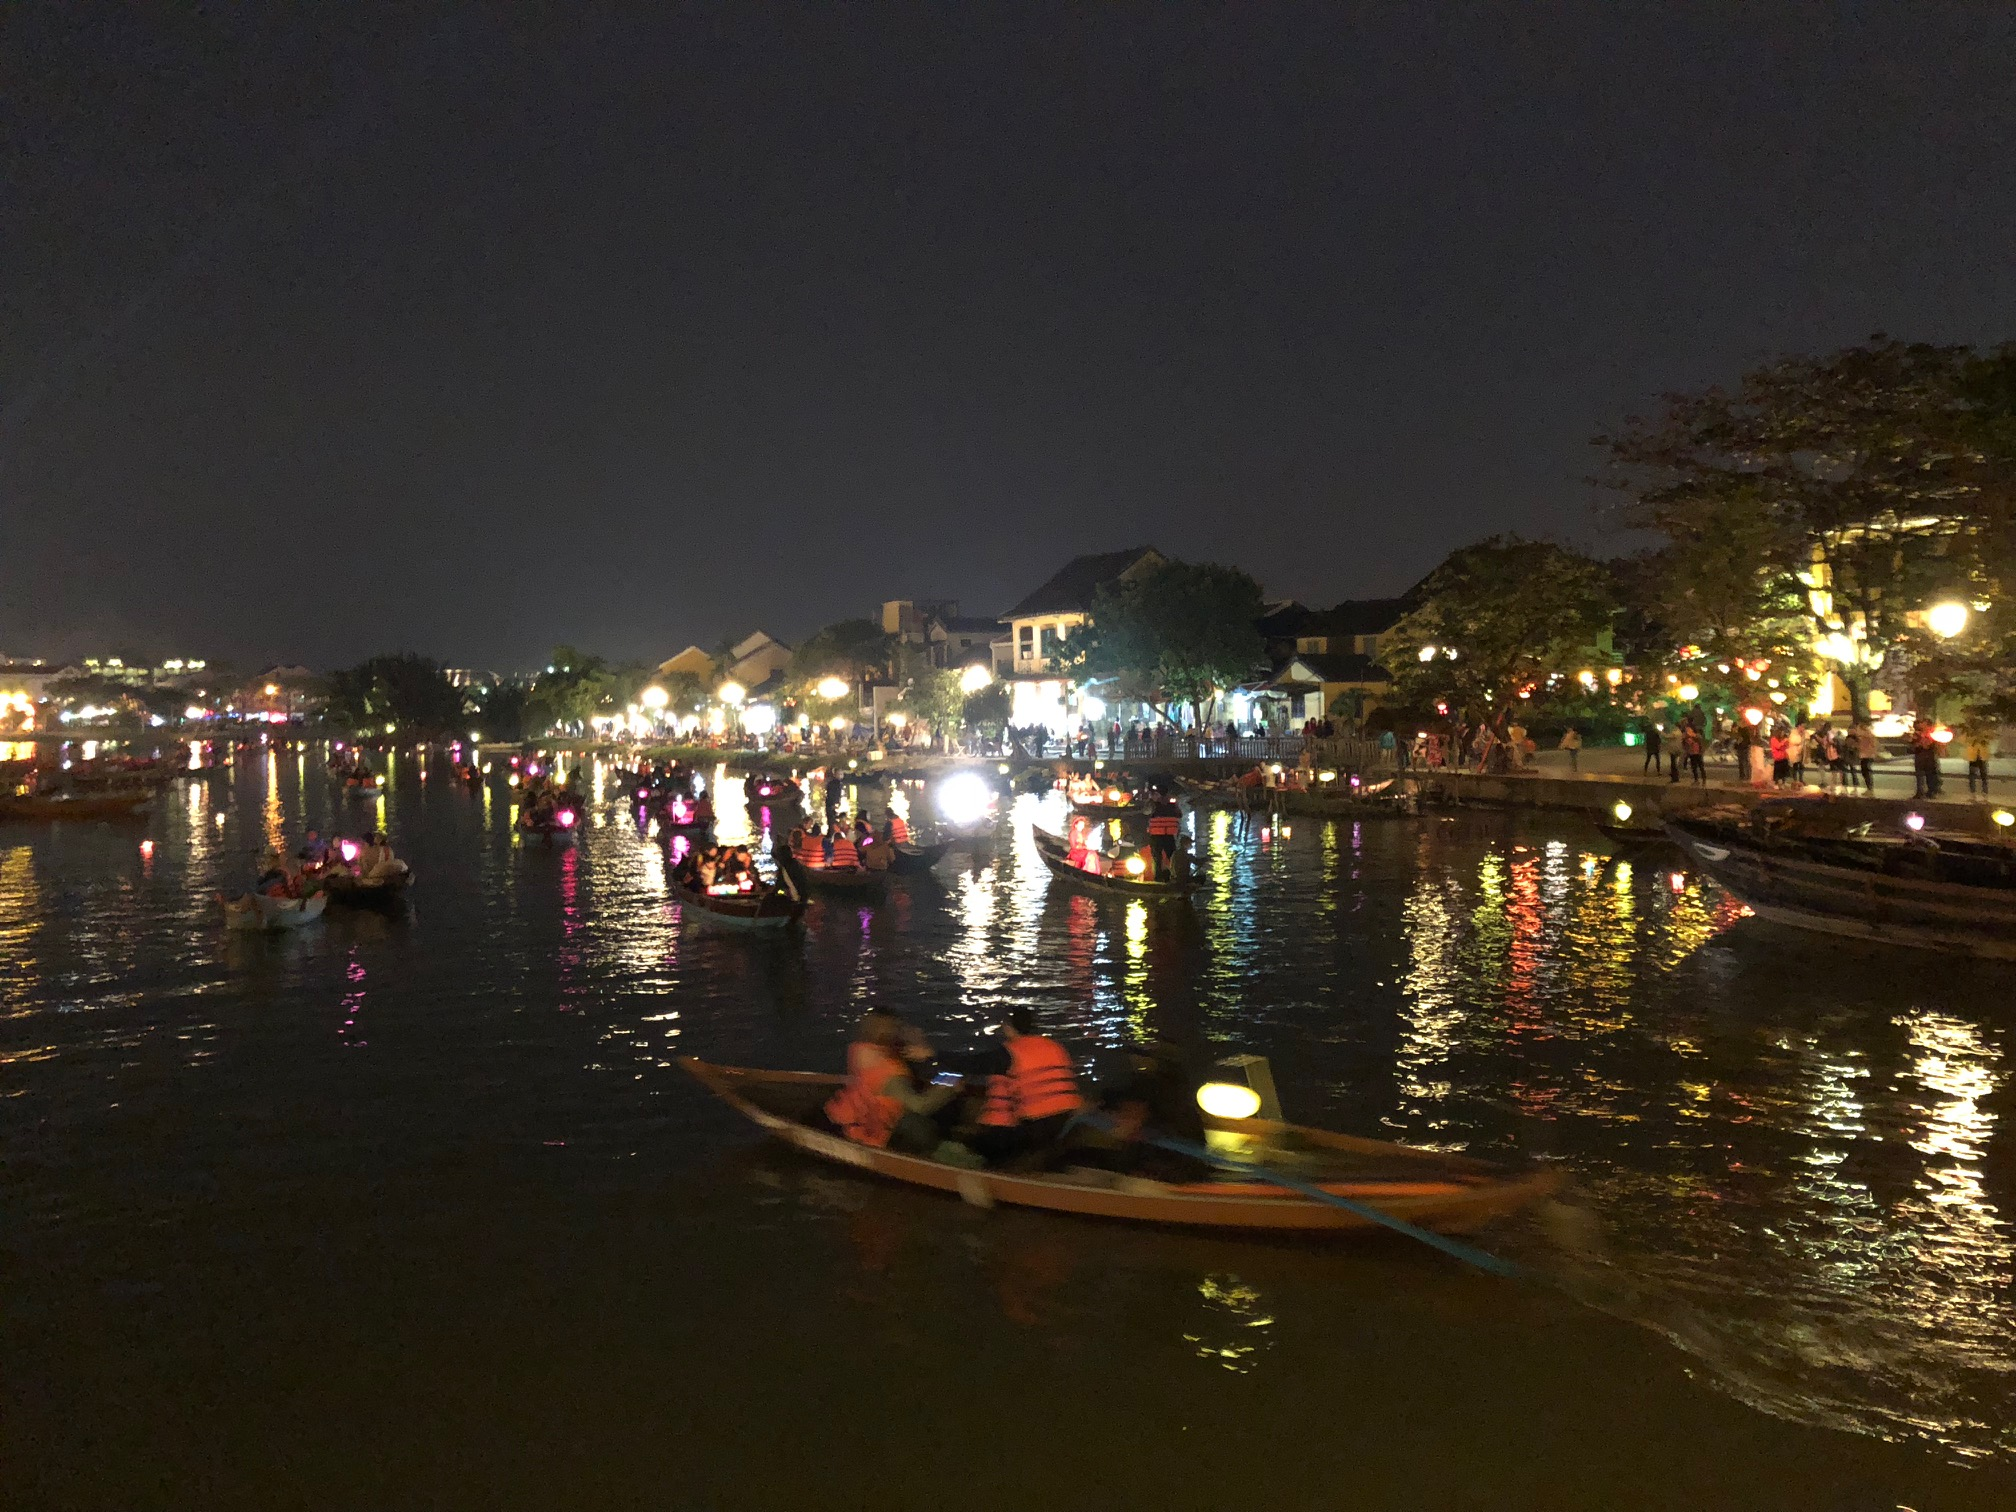 An evening at Hoi An